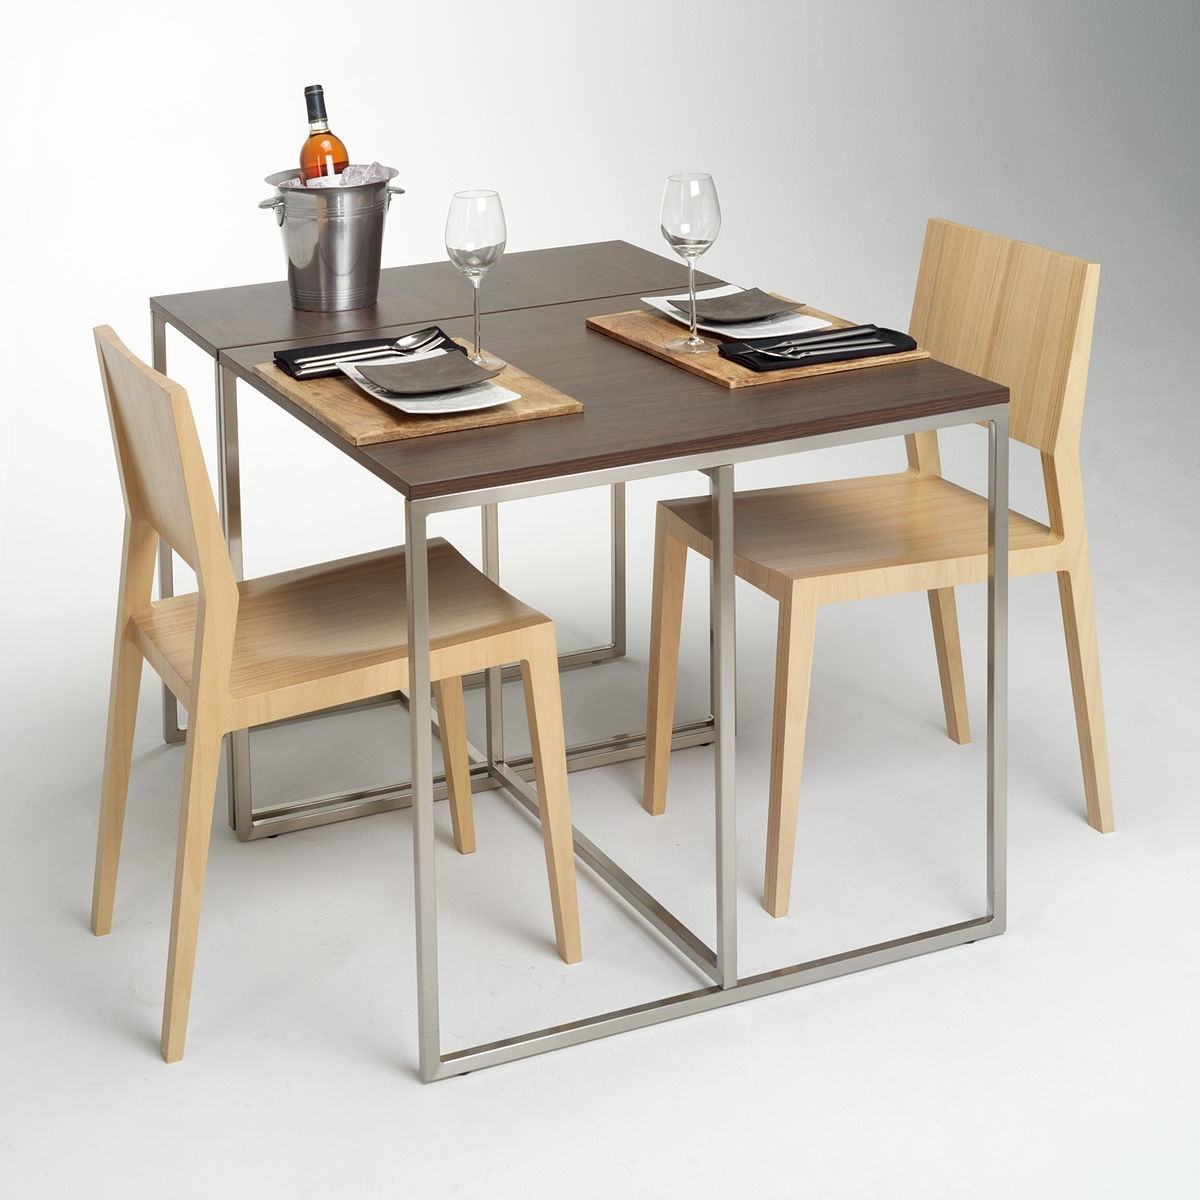 Furniture – Wikipedia For Trendy Dining Tables With 2 Seater (View 21 of 25)